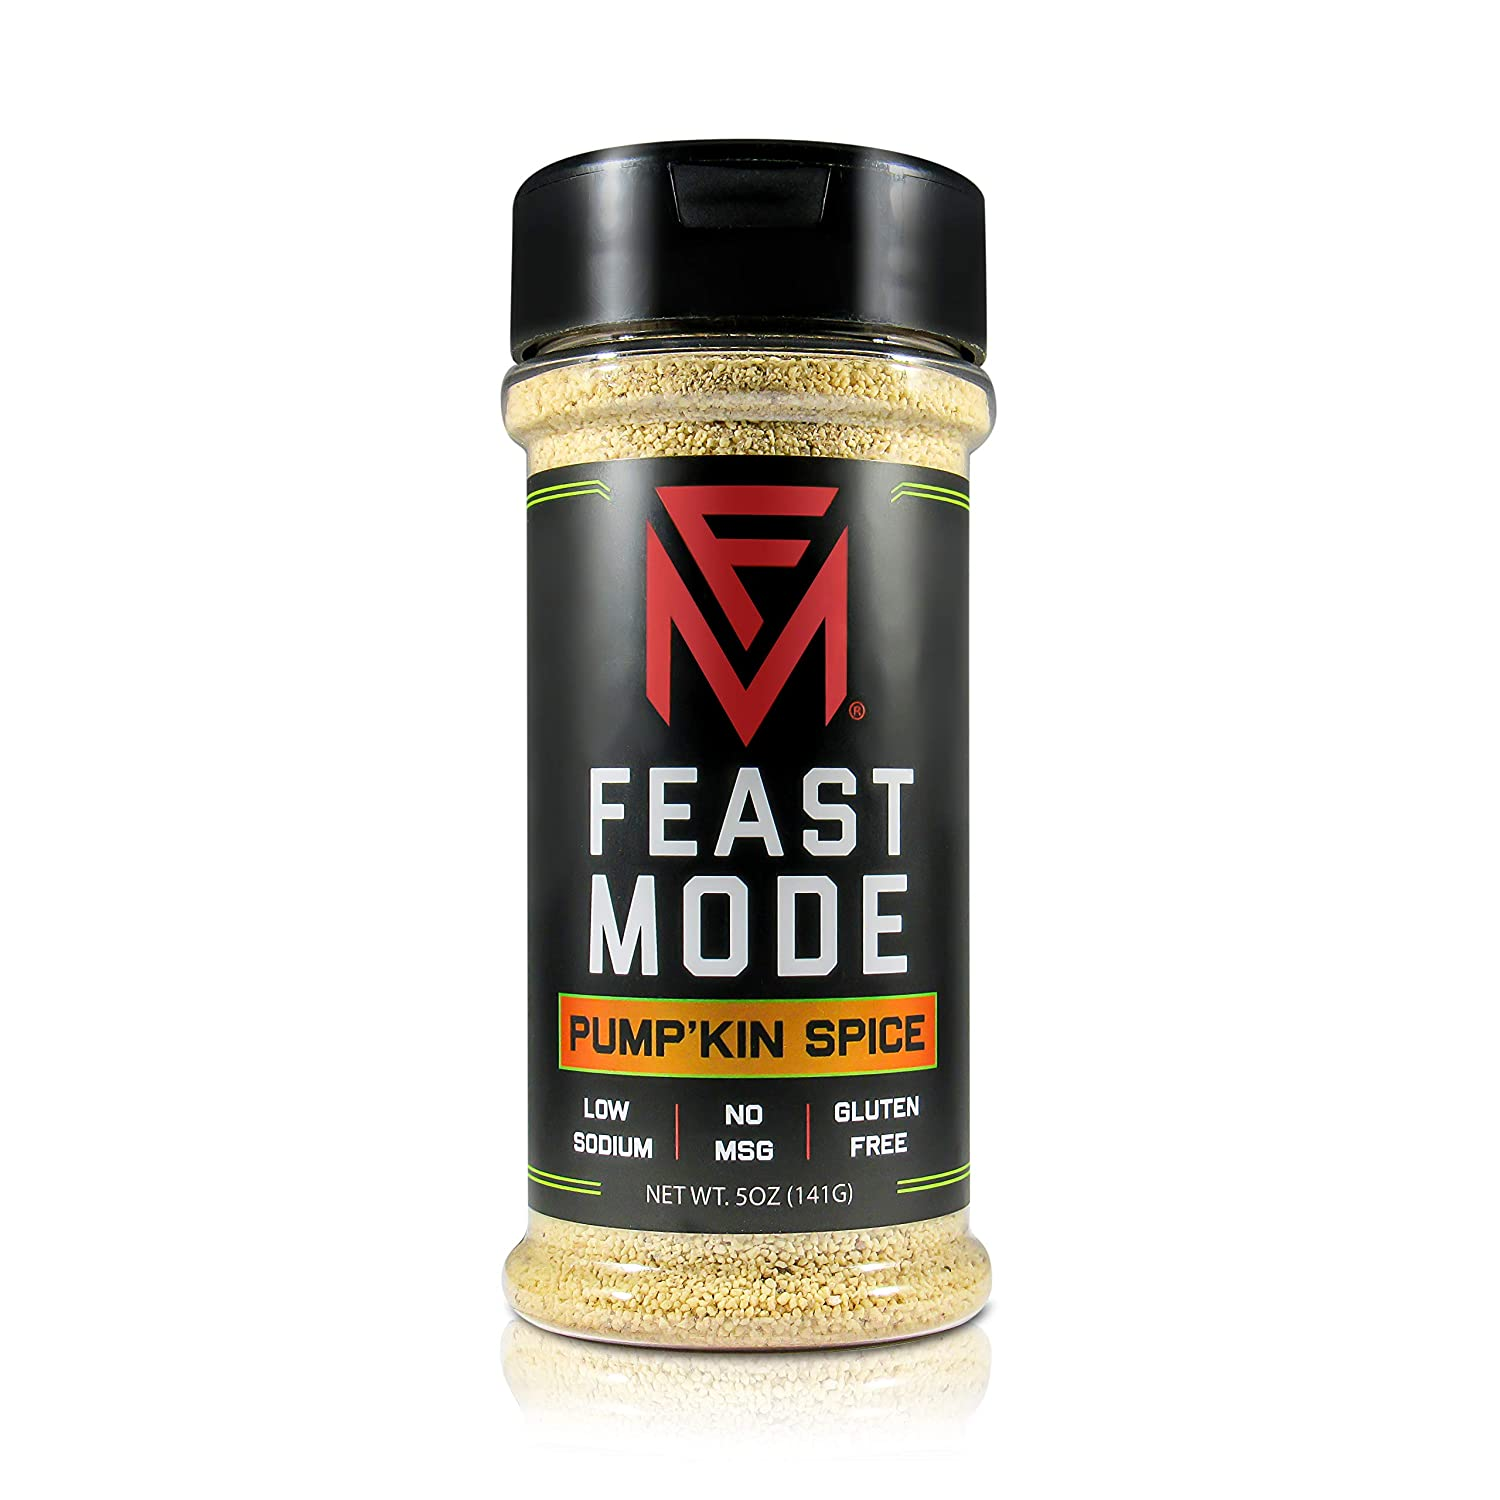 NEW Popular standard Pump'kin Spice - Feast Price reduction Mode Holiday Edition Low Flavors